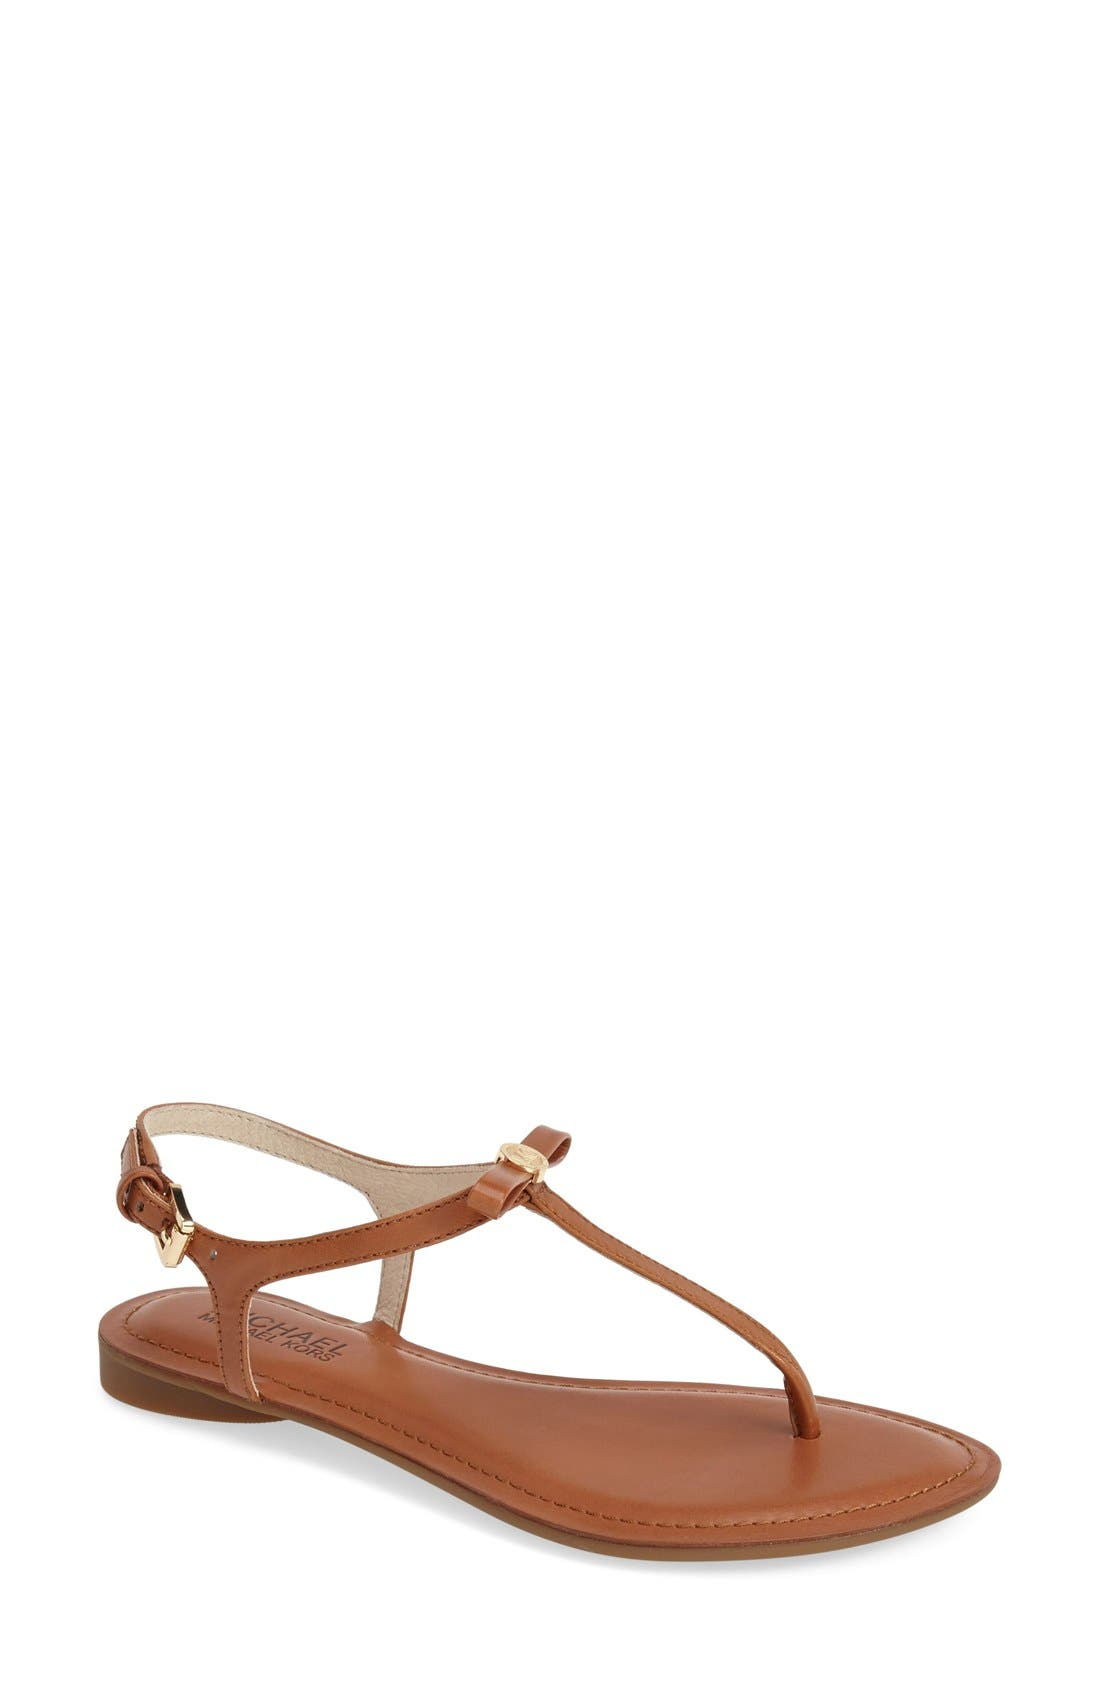 'Josie' T-Strap Leather Sandal,                             Main thumbnail 1, color,                             Luggage